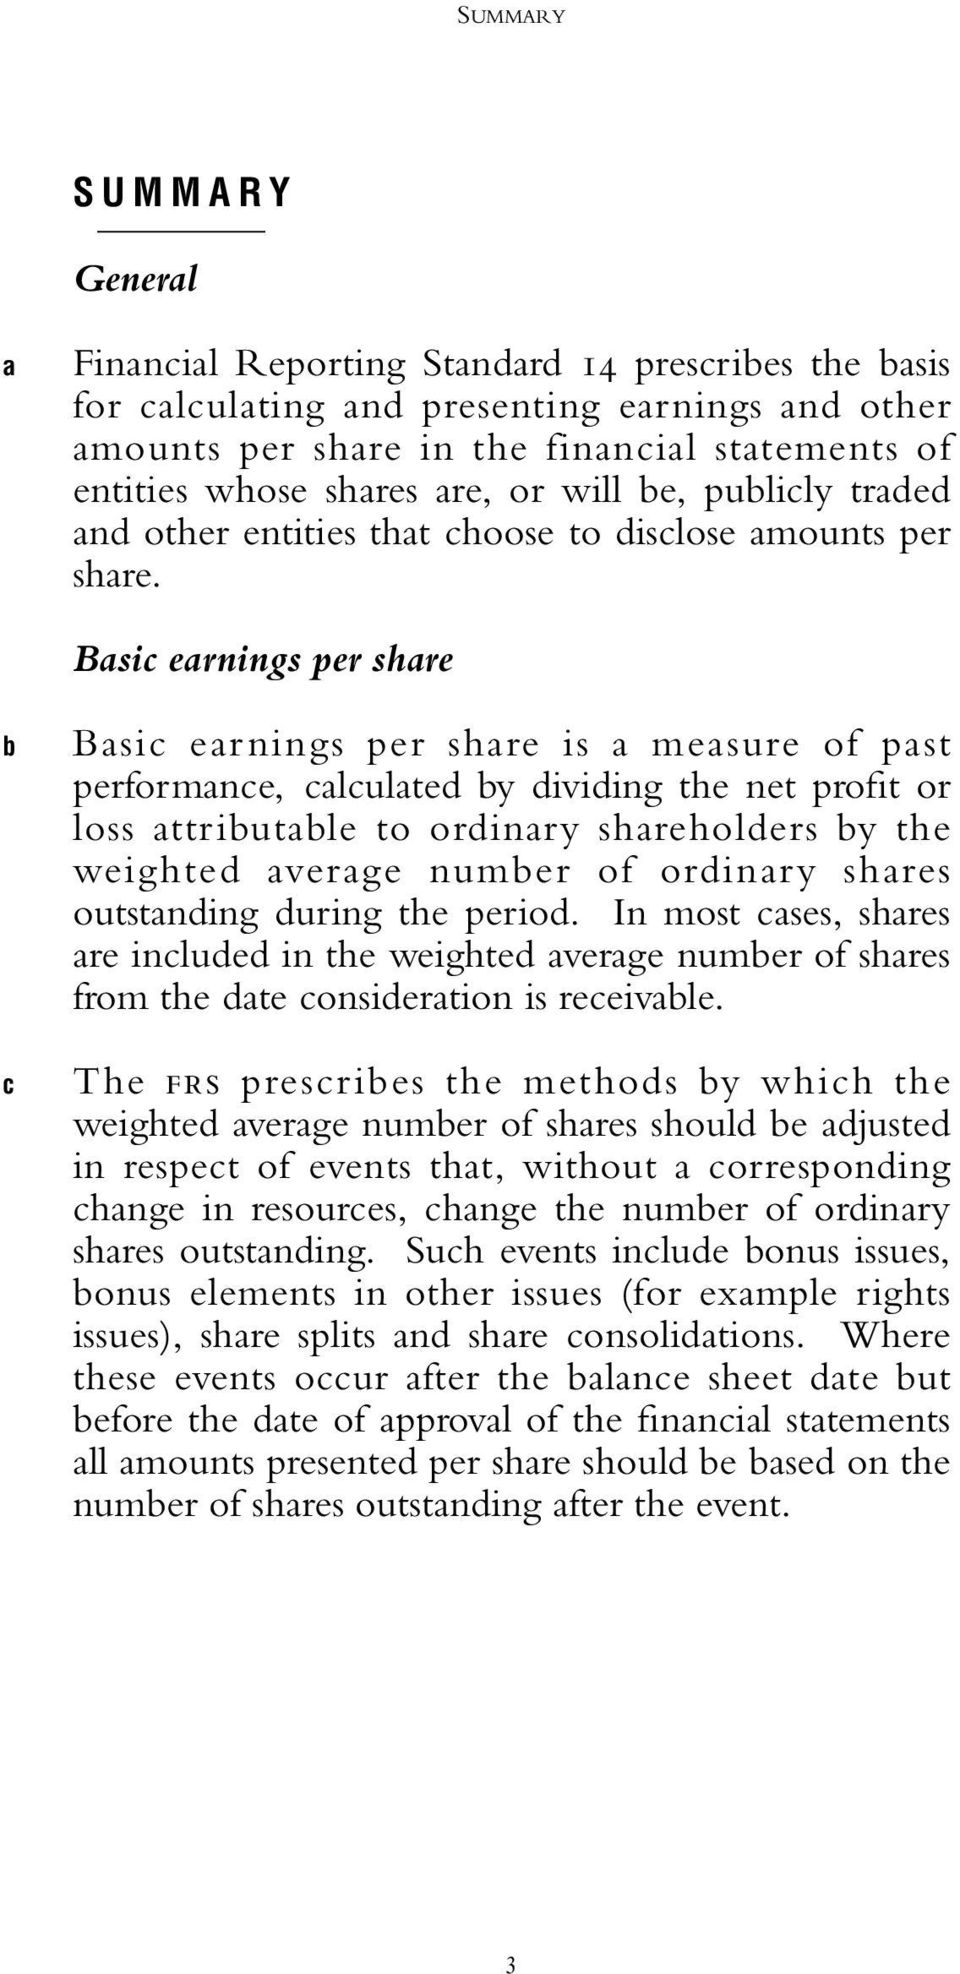 Basic earnings per share b c Basic earnings per share is a measure of past performance, calculated by dividing the net profit or loss attributable to ordinary shareholders by the weighted average